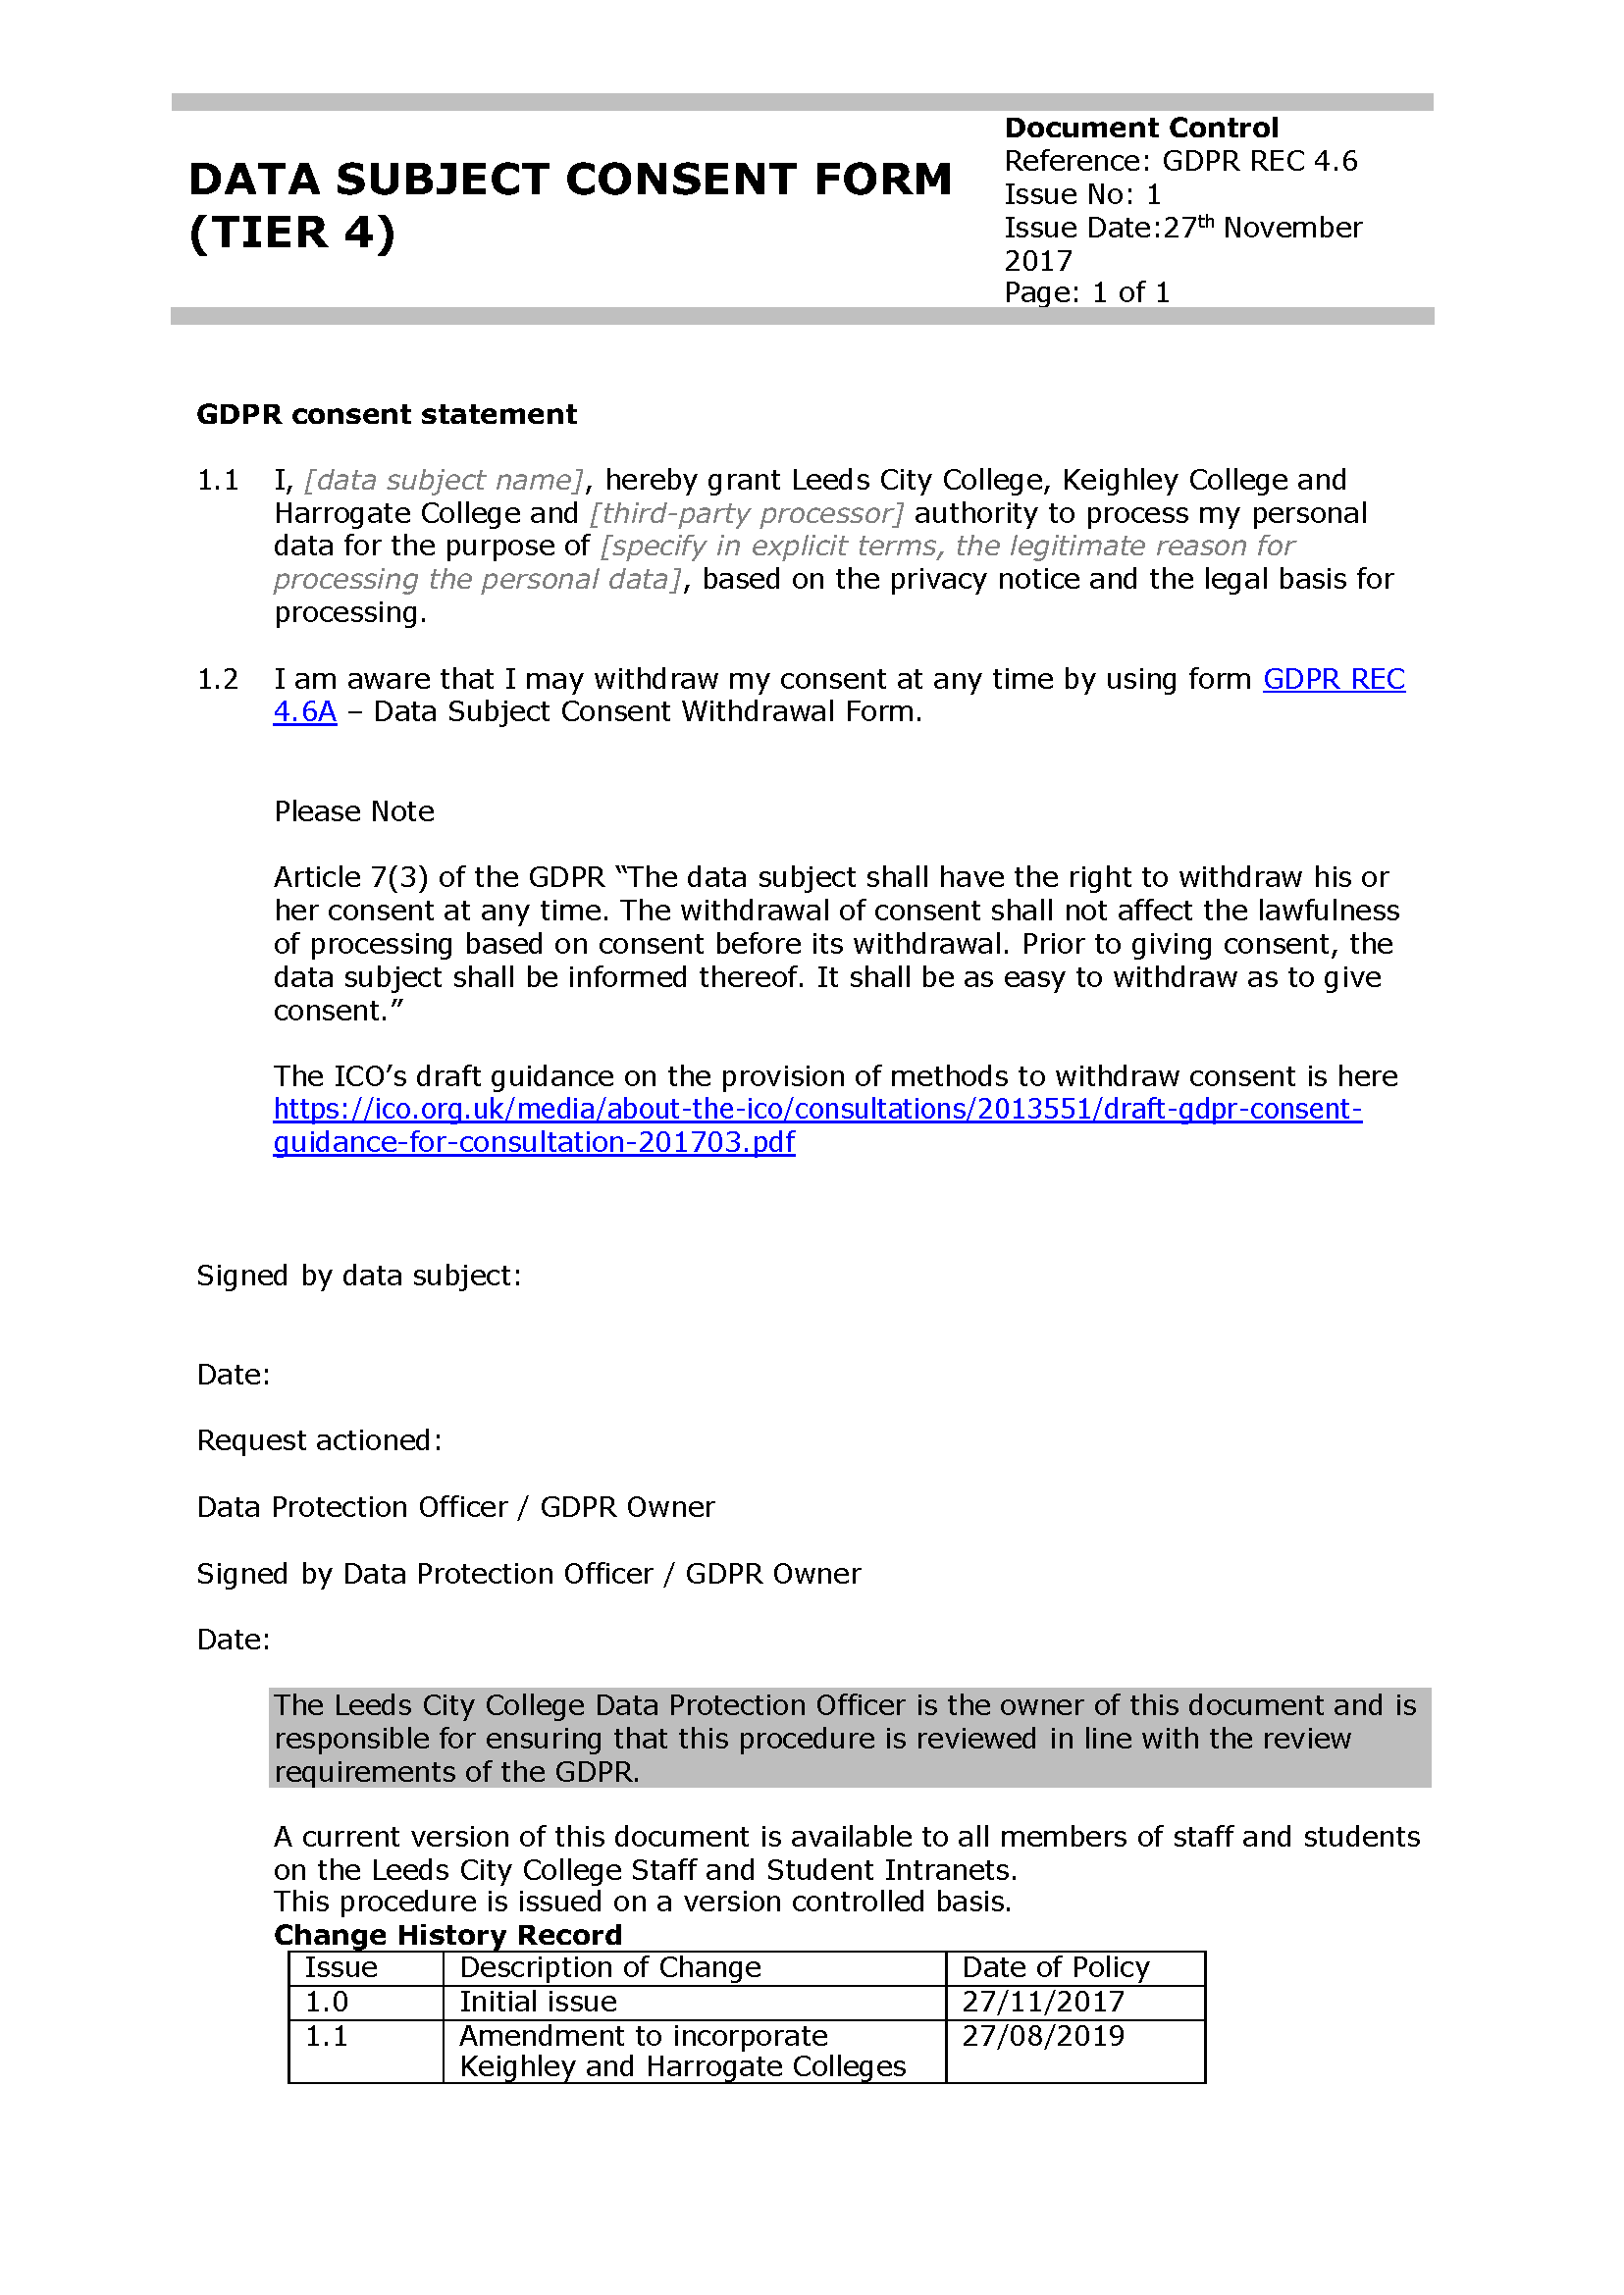 GDPR Data Subject Consent Form cover